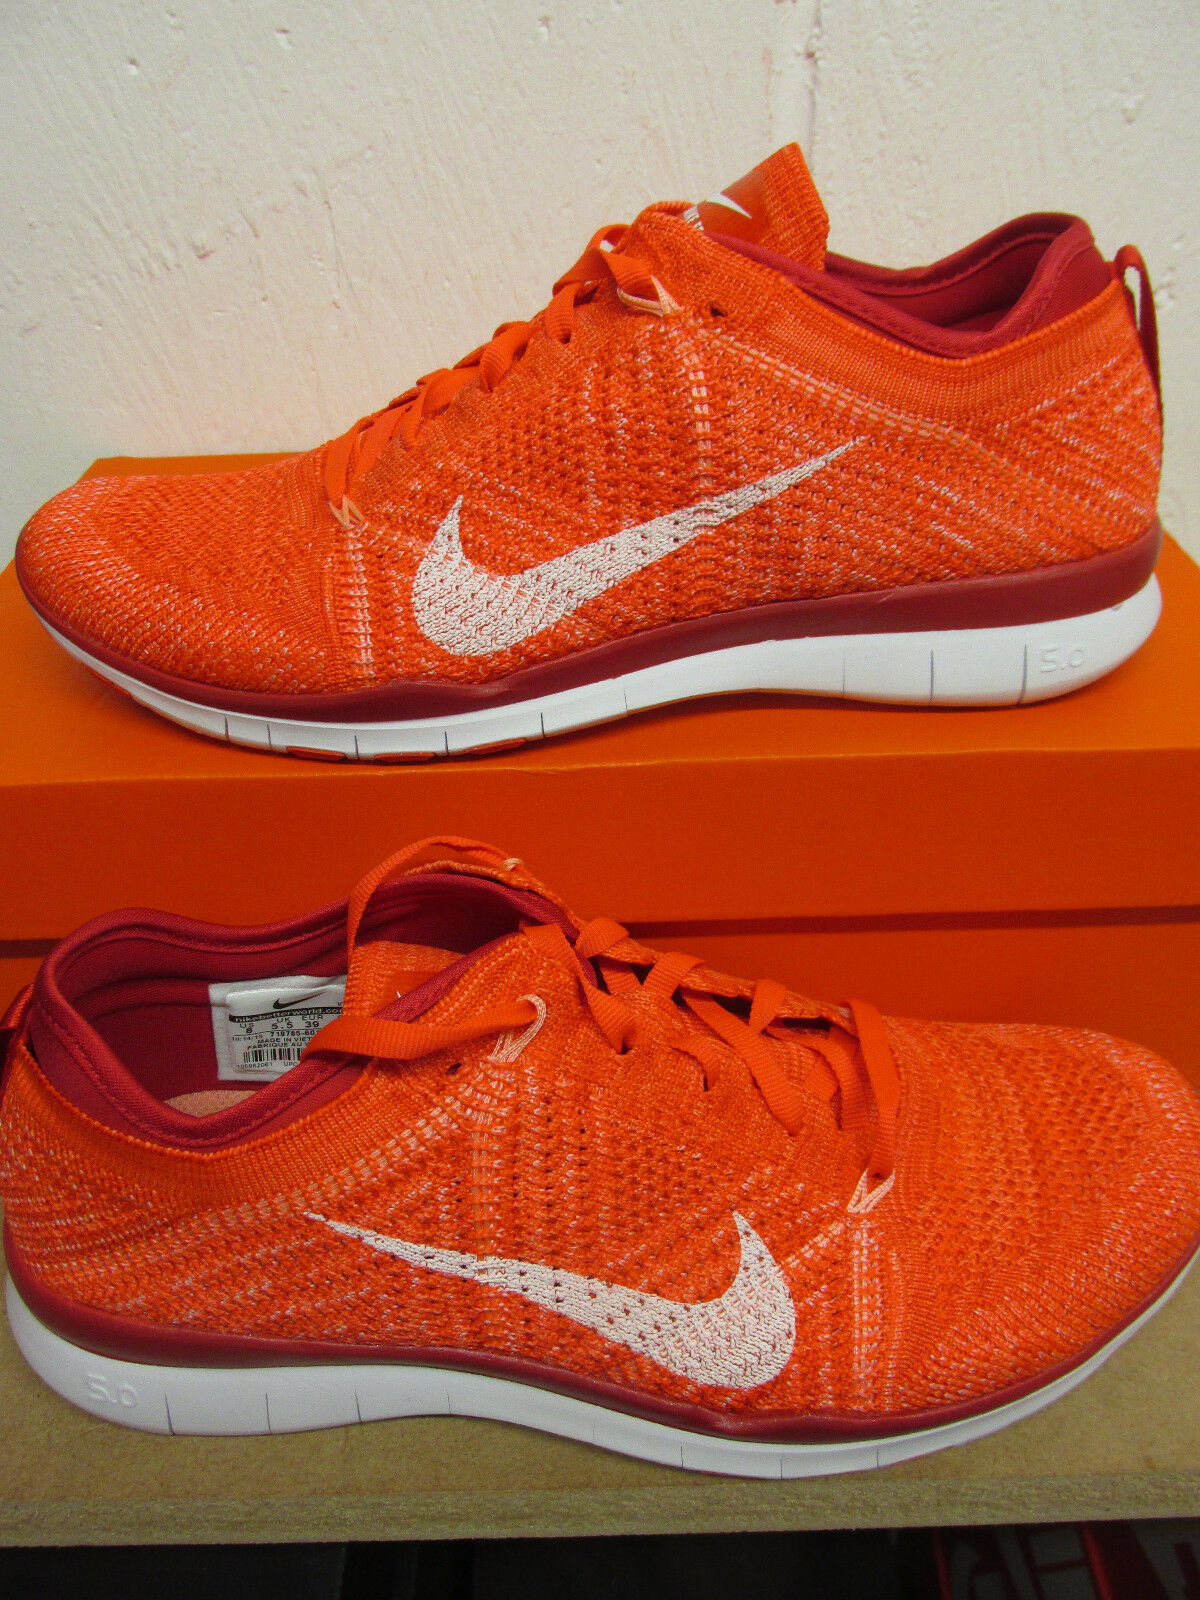 nike womens free TR flyknit running trainers 718785 601 sneakers shoes Wild casual shoes